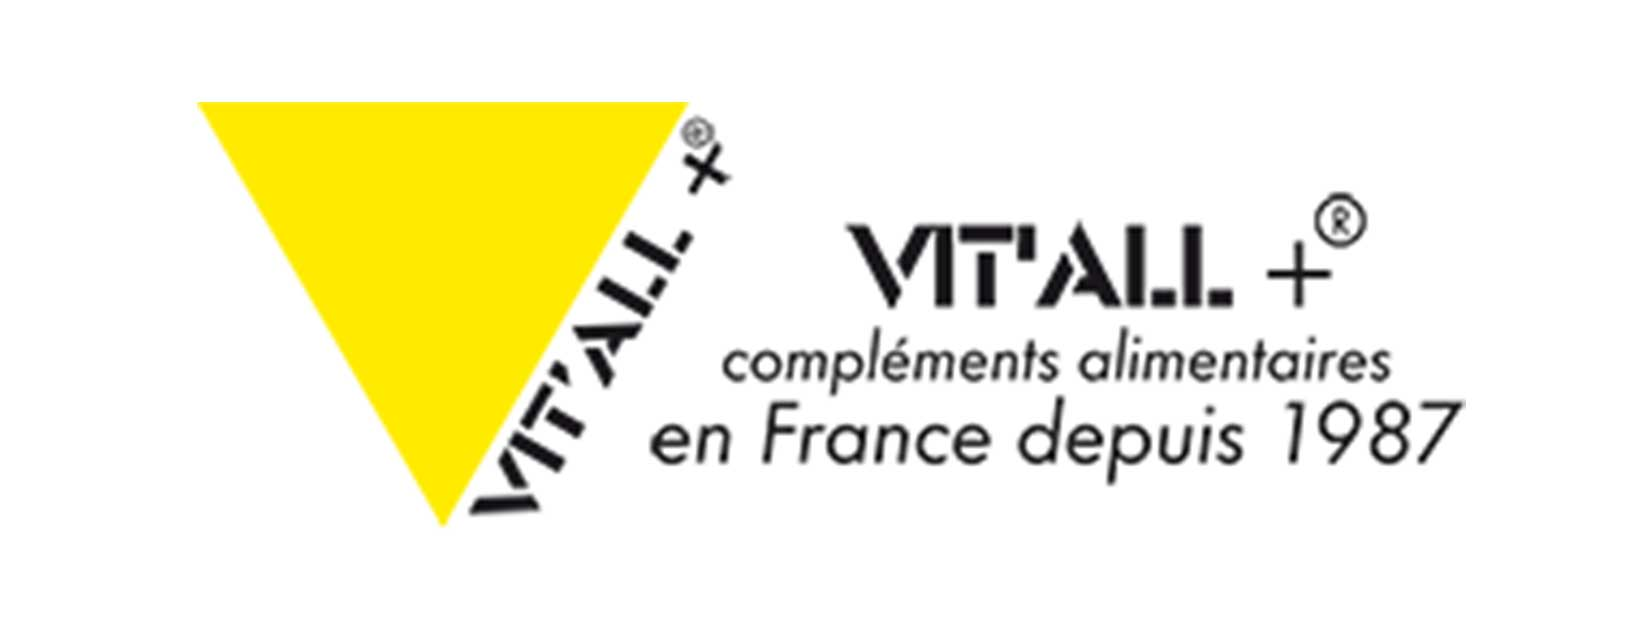 vit'all + complement alimentaire nice